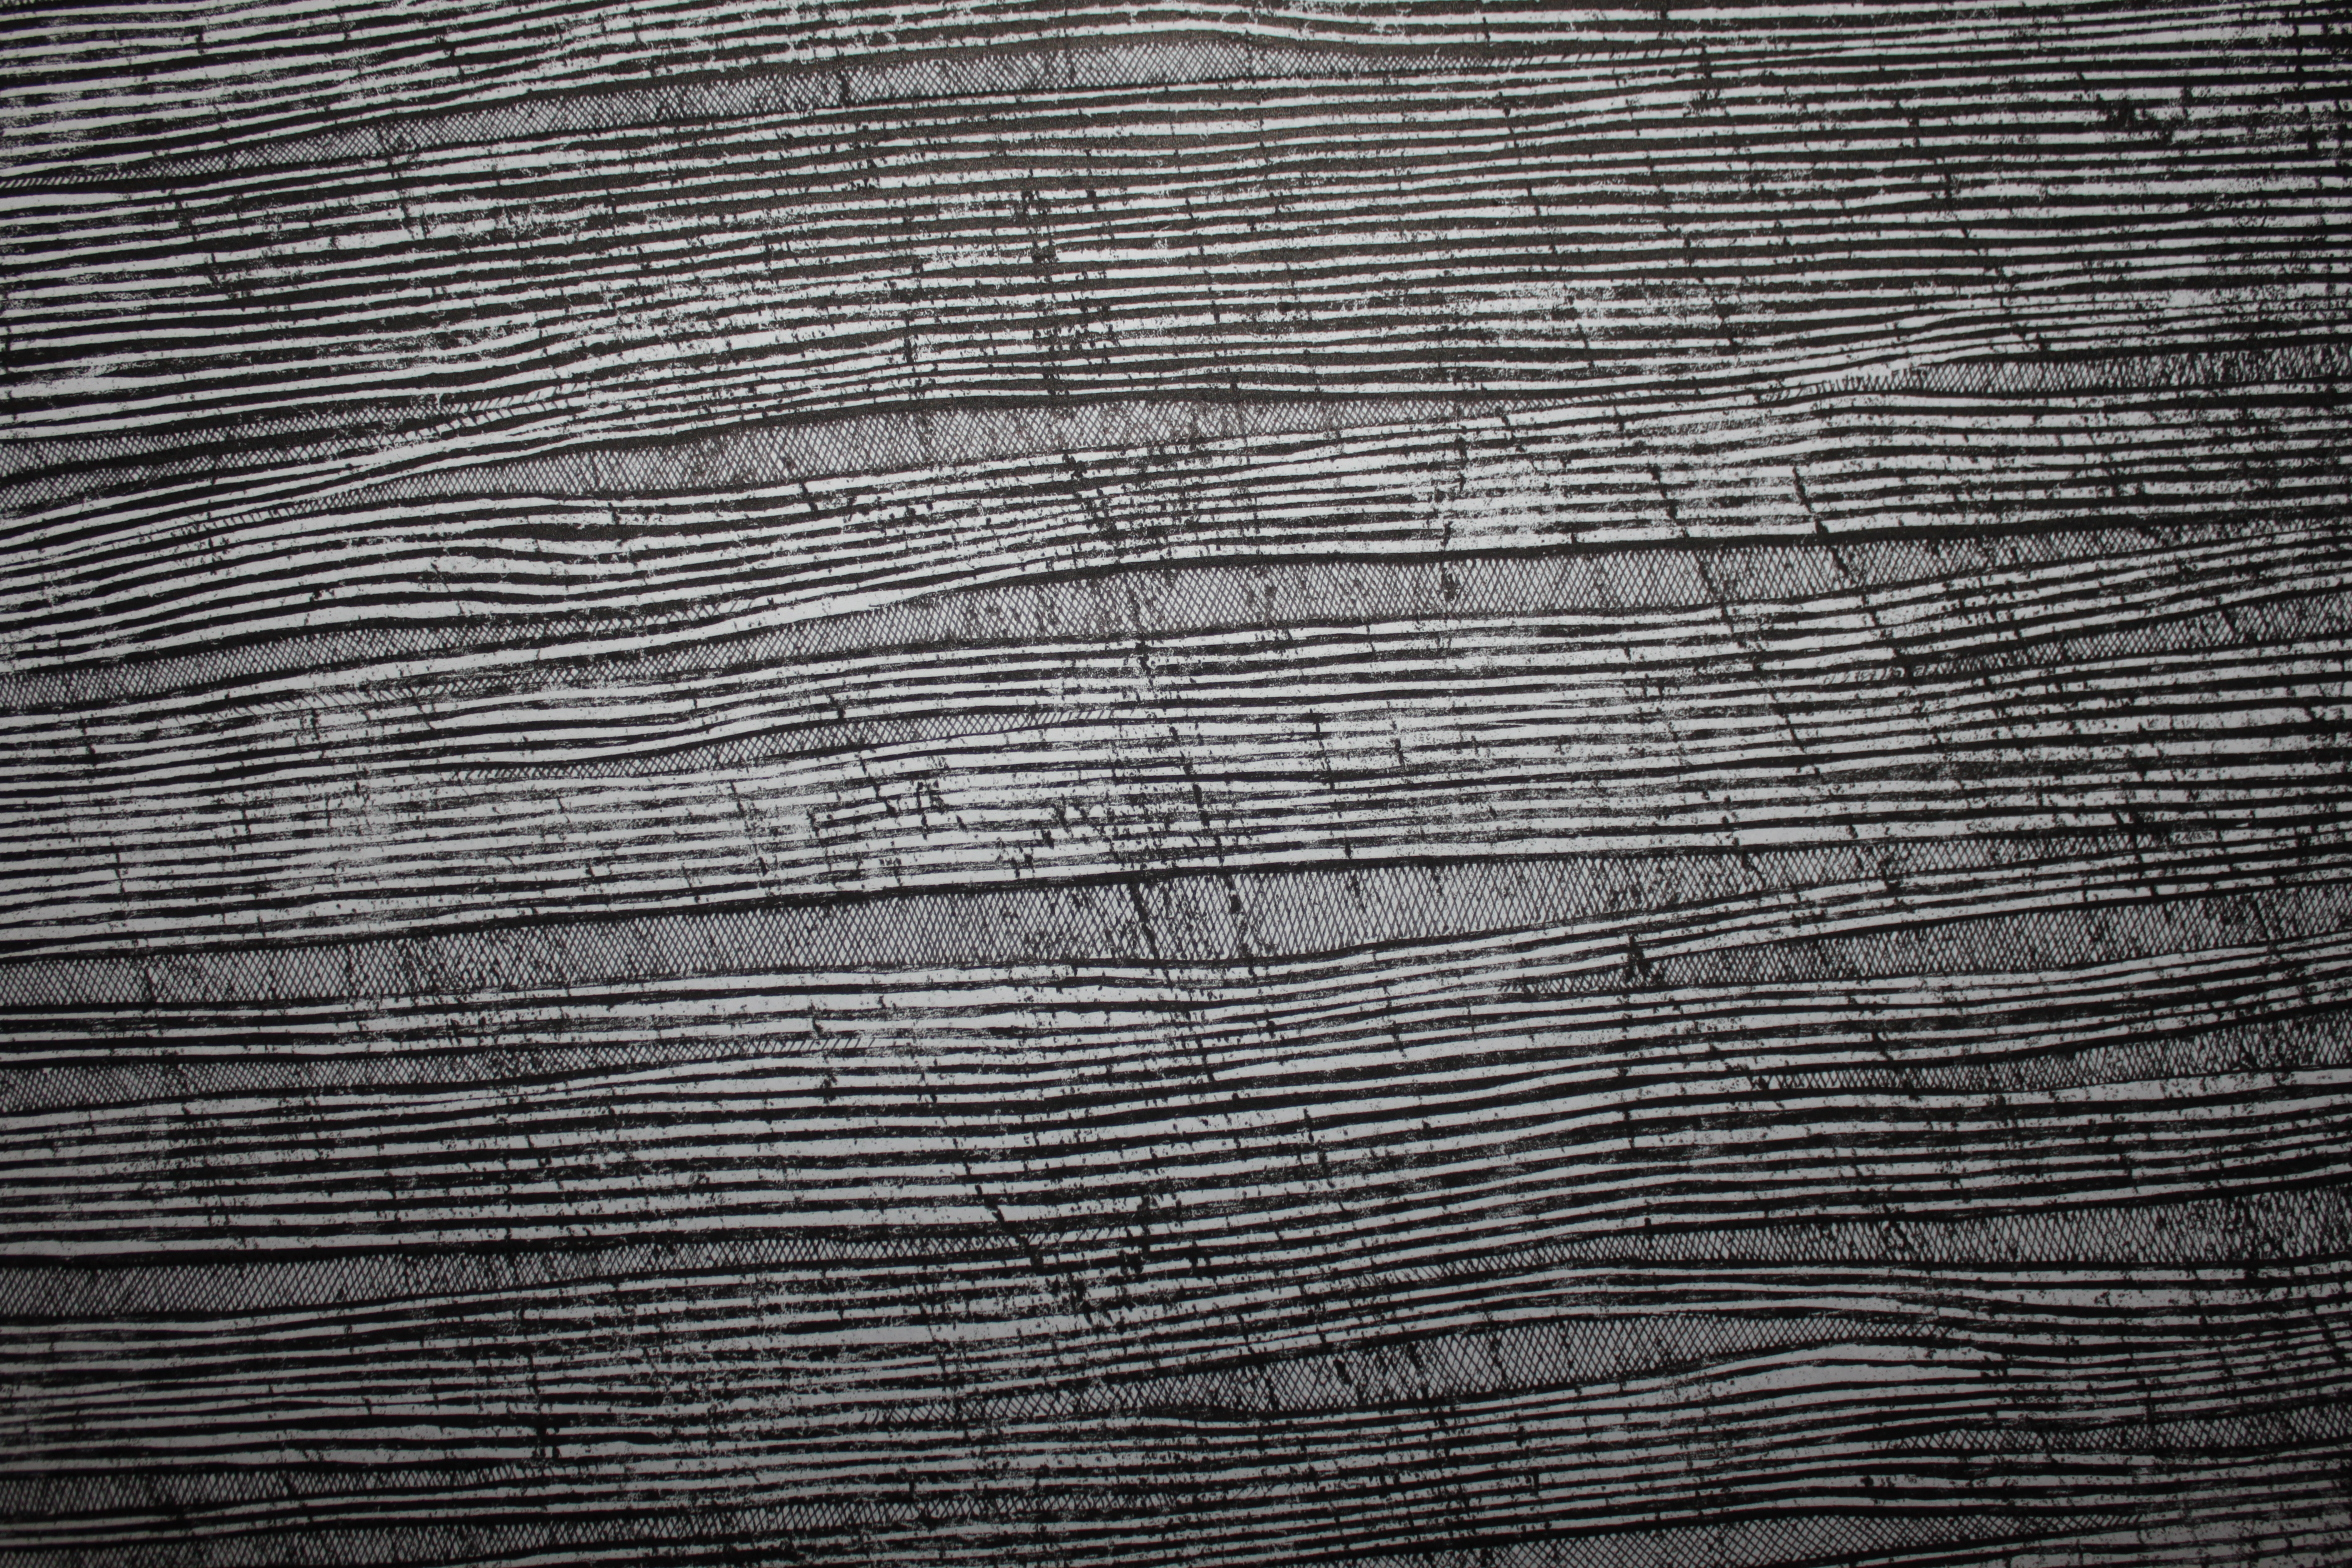 Locust 2 (detail).  2013. woodcut and concrete block relief with pen and ink on Japanese paper. 39 in x 26 in